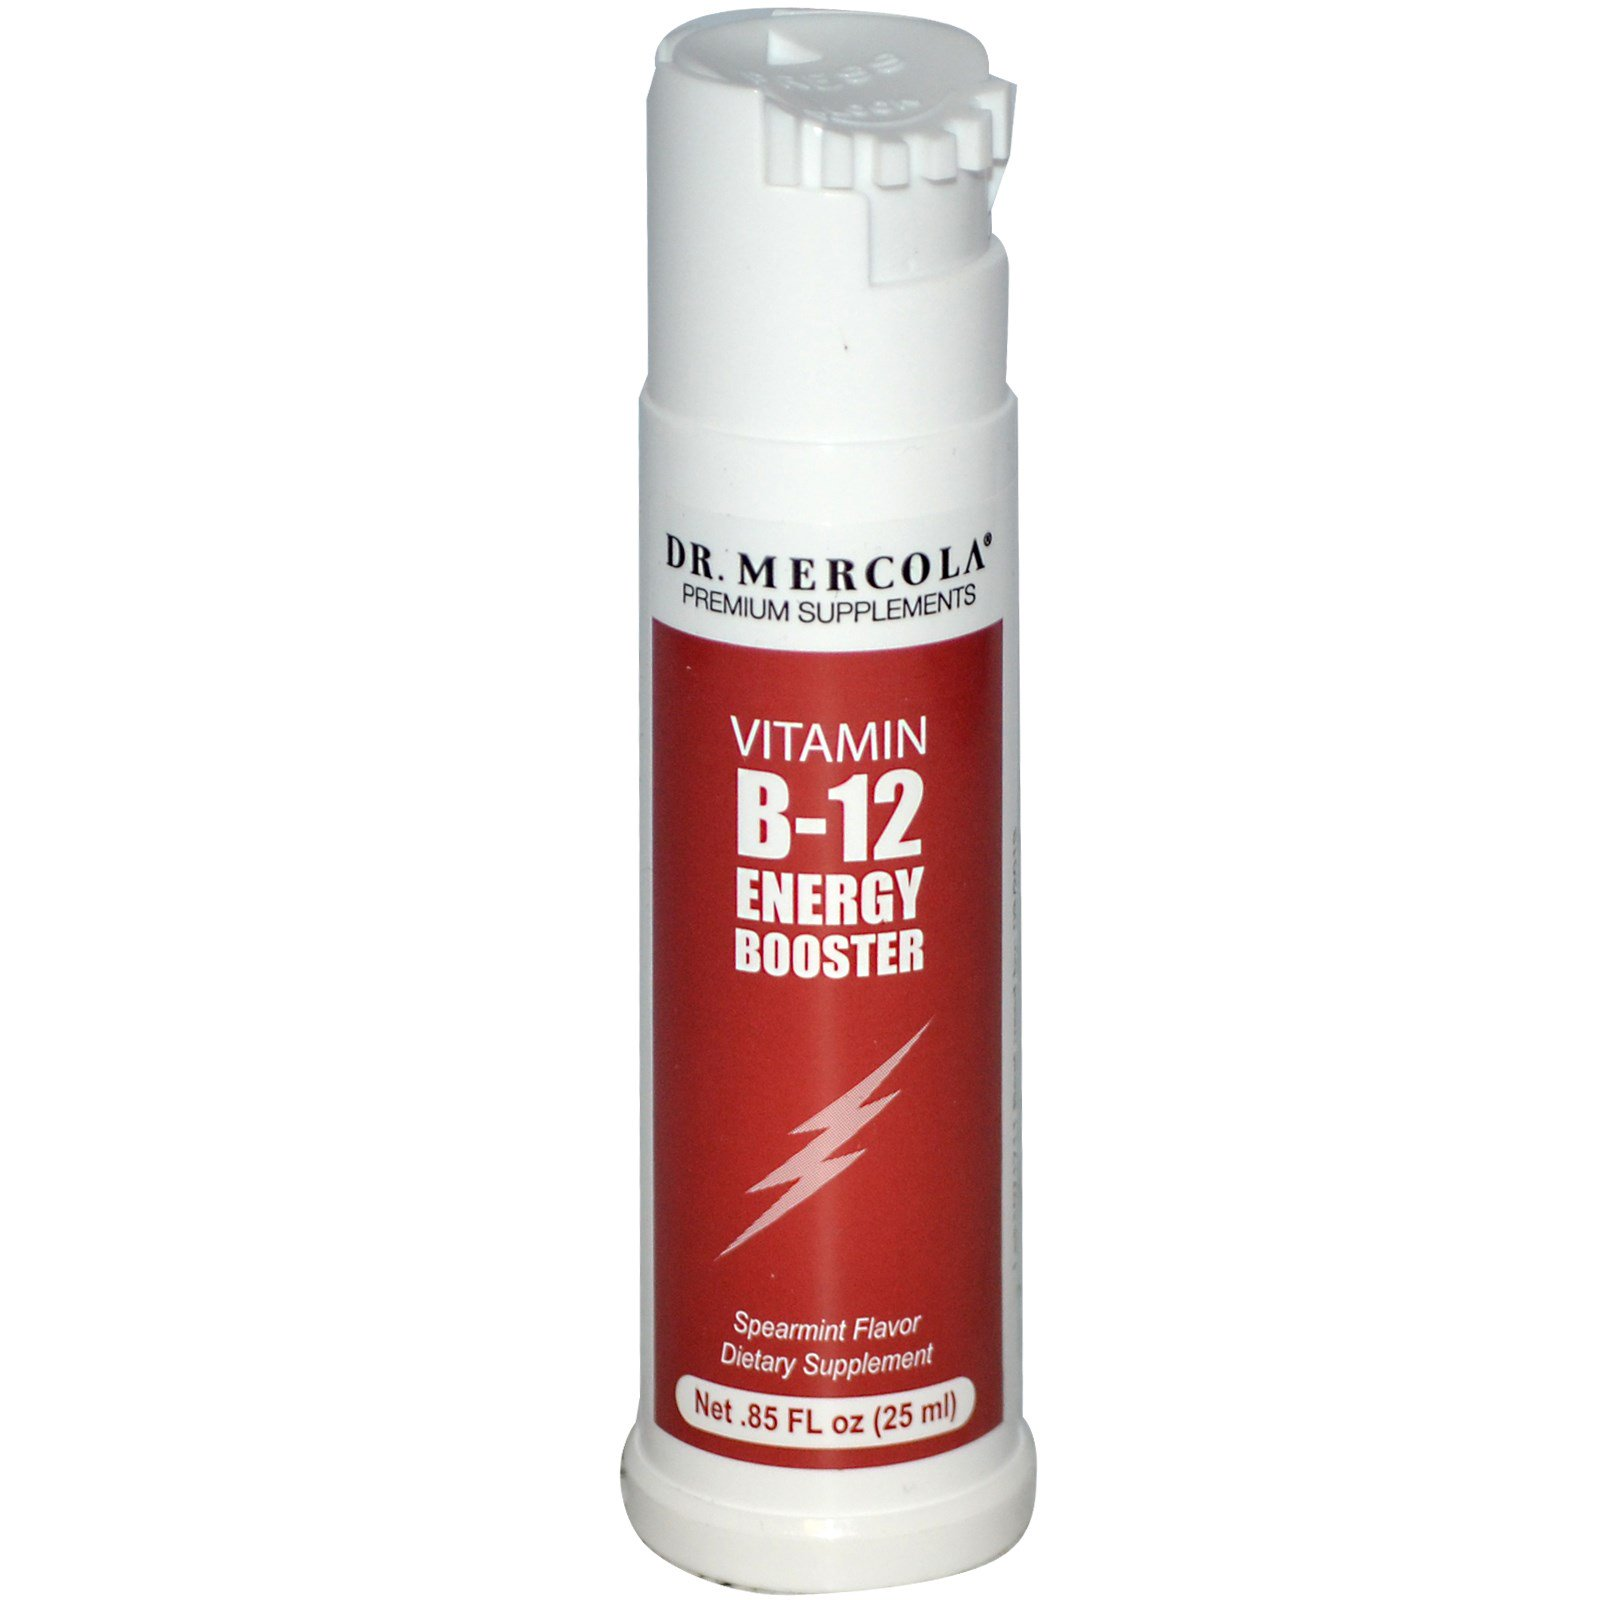 dr mercola vitamin b 12 energy booster spearmint flavor. Black Bedroom Furniture Sets. Home Design Ideas